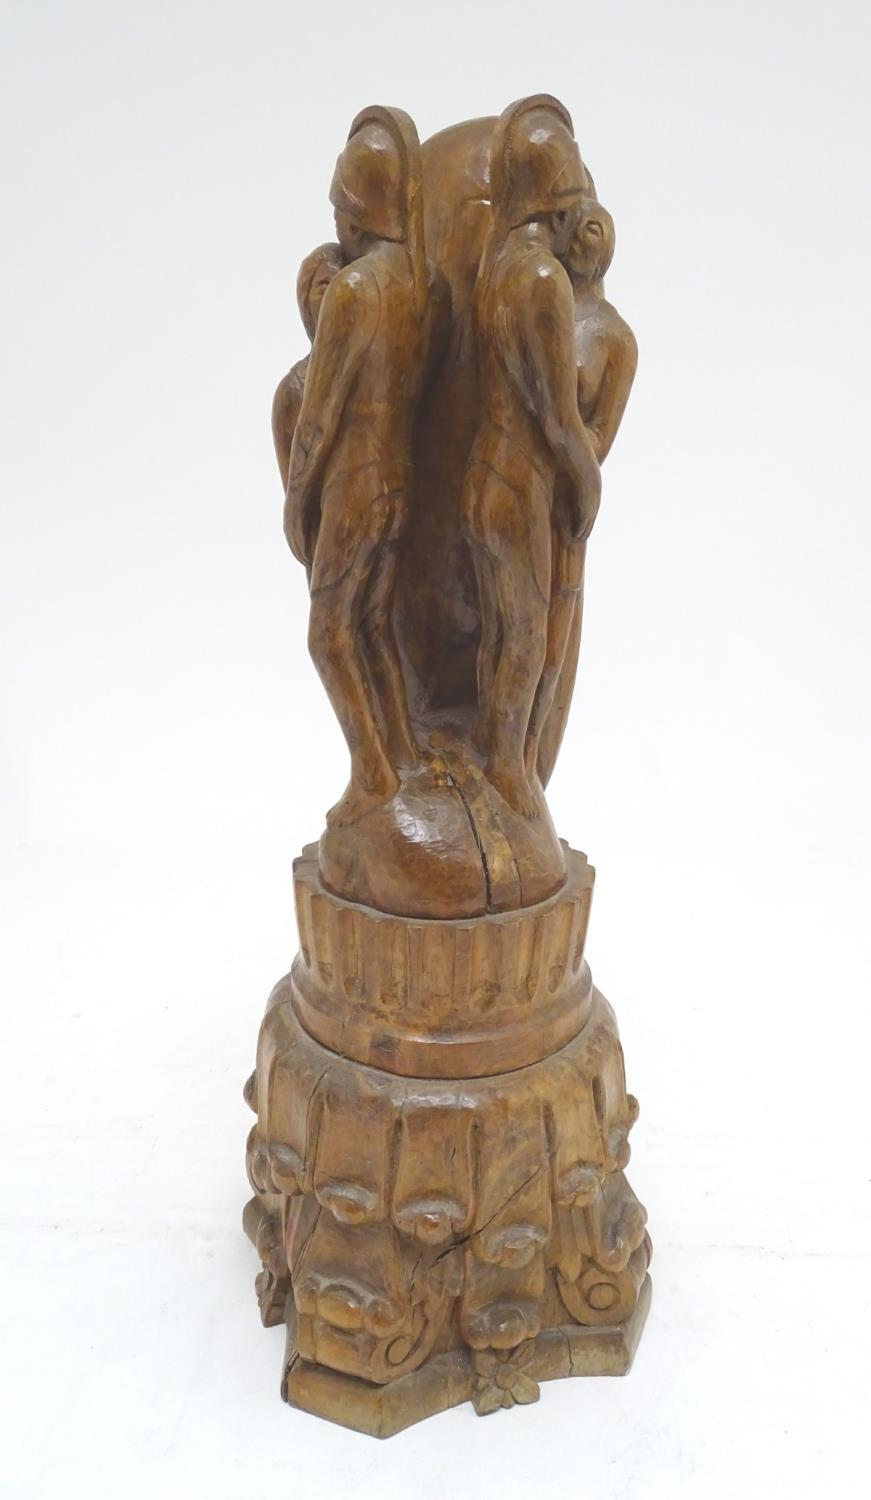 A 20thC carved wooden sculpture titled Tragic Muse to base, monogrammed TD and dated 1971 to side. - Image 4 of 17